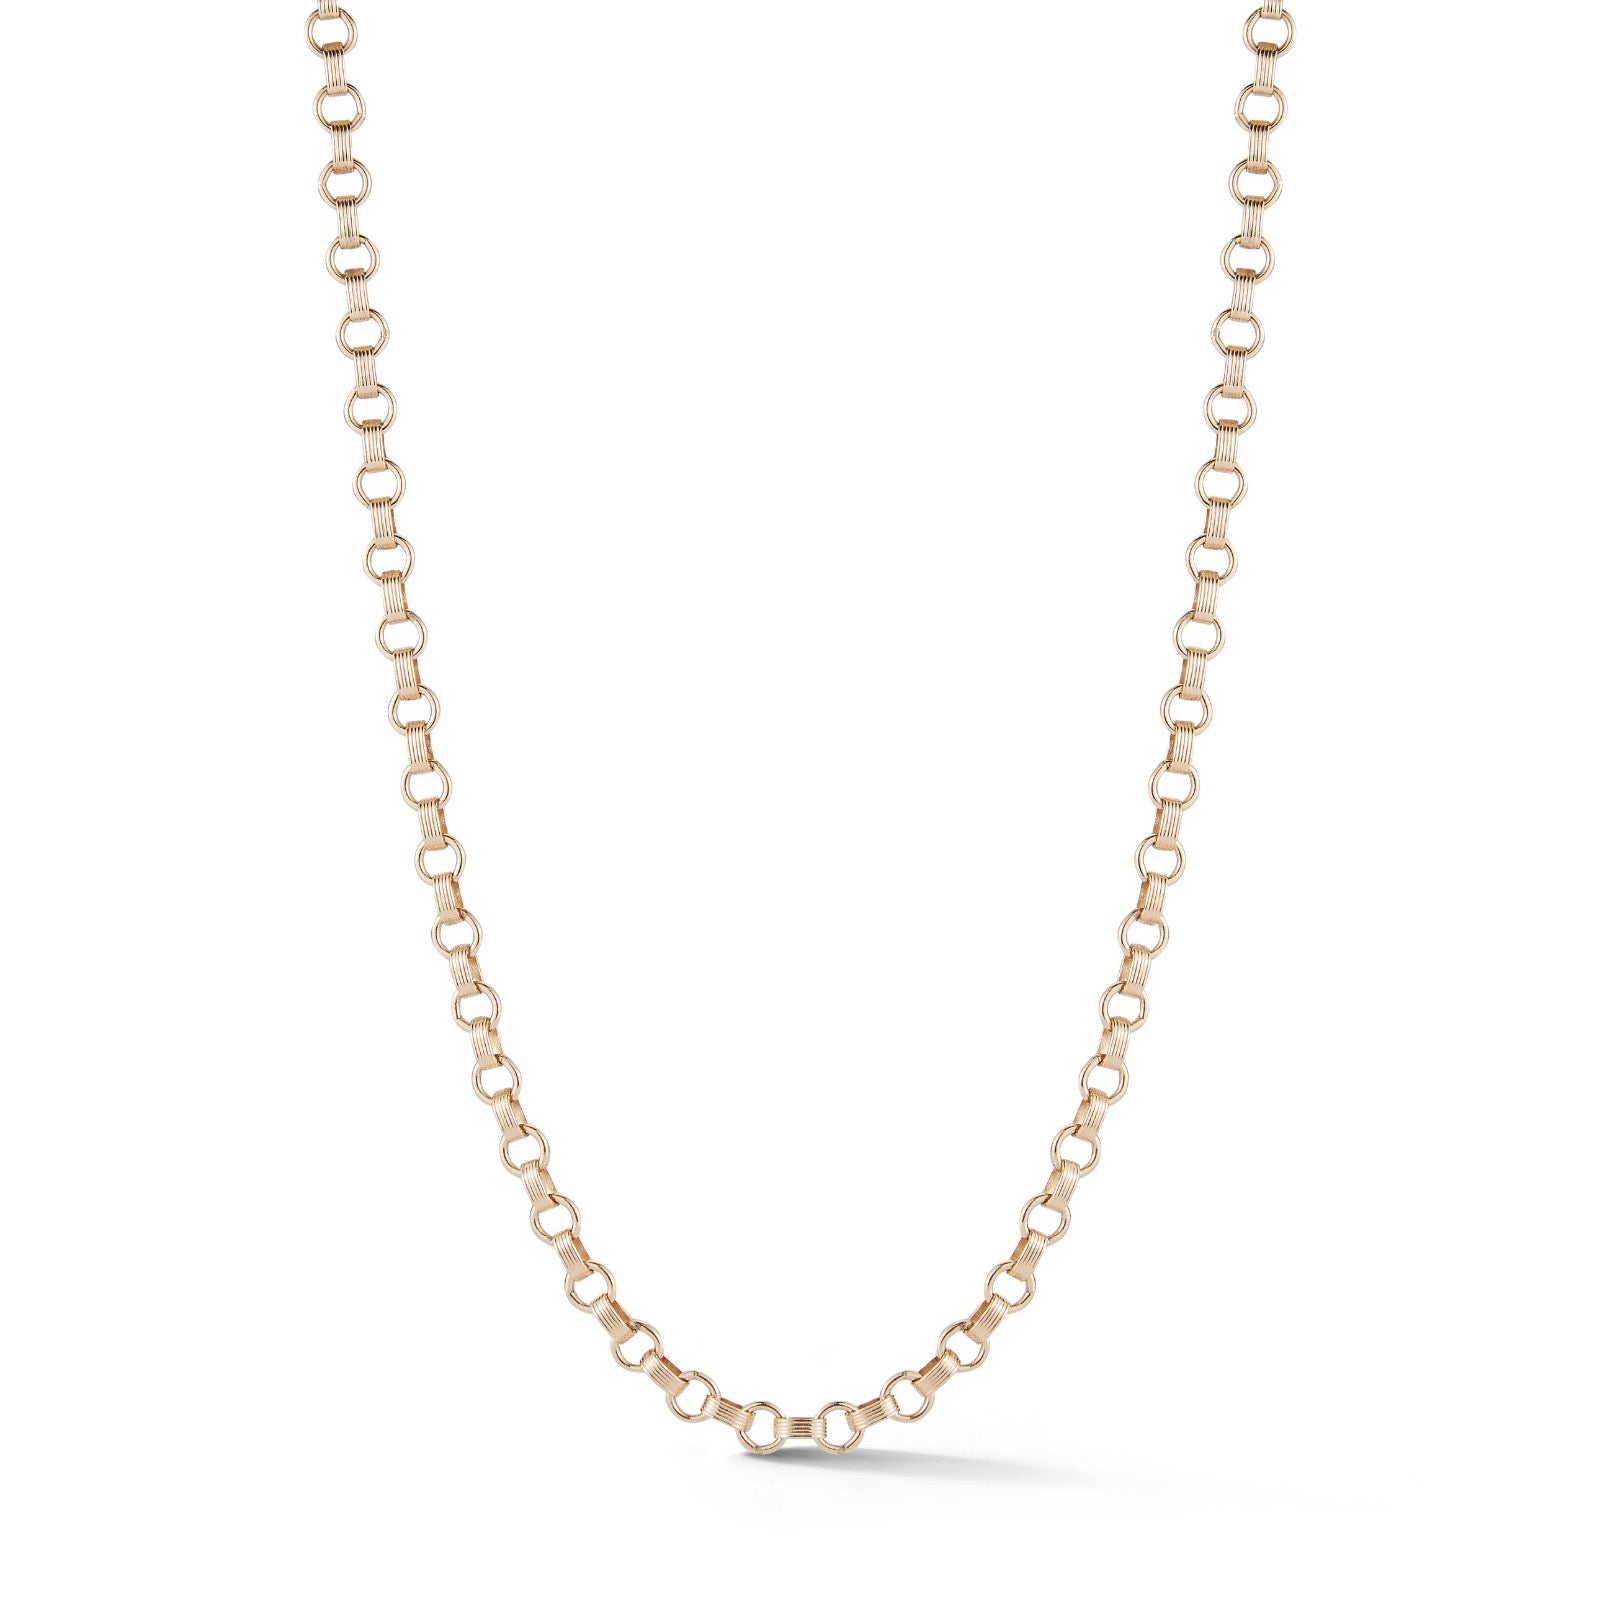 "14K Gold Book Link 19"" Everett Chain"